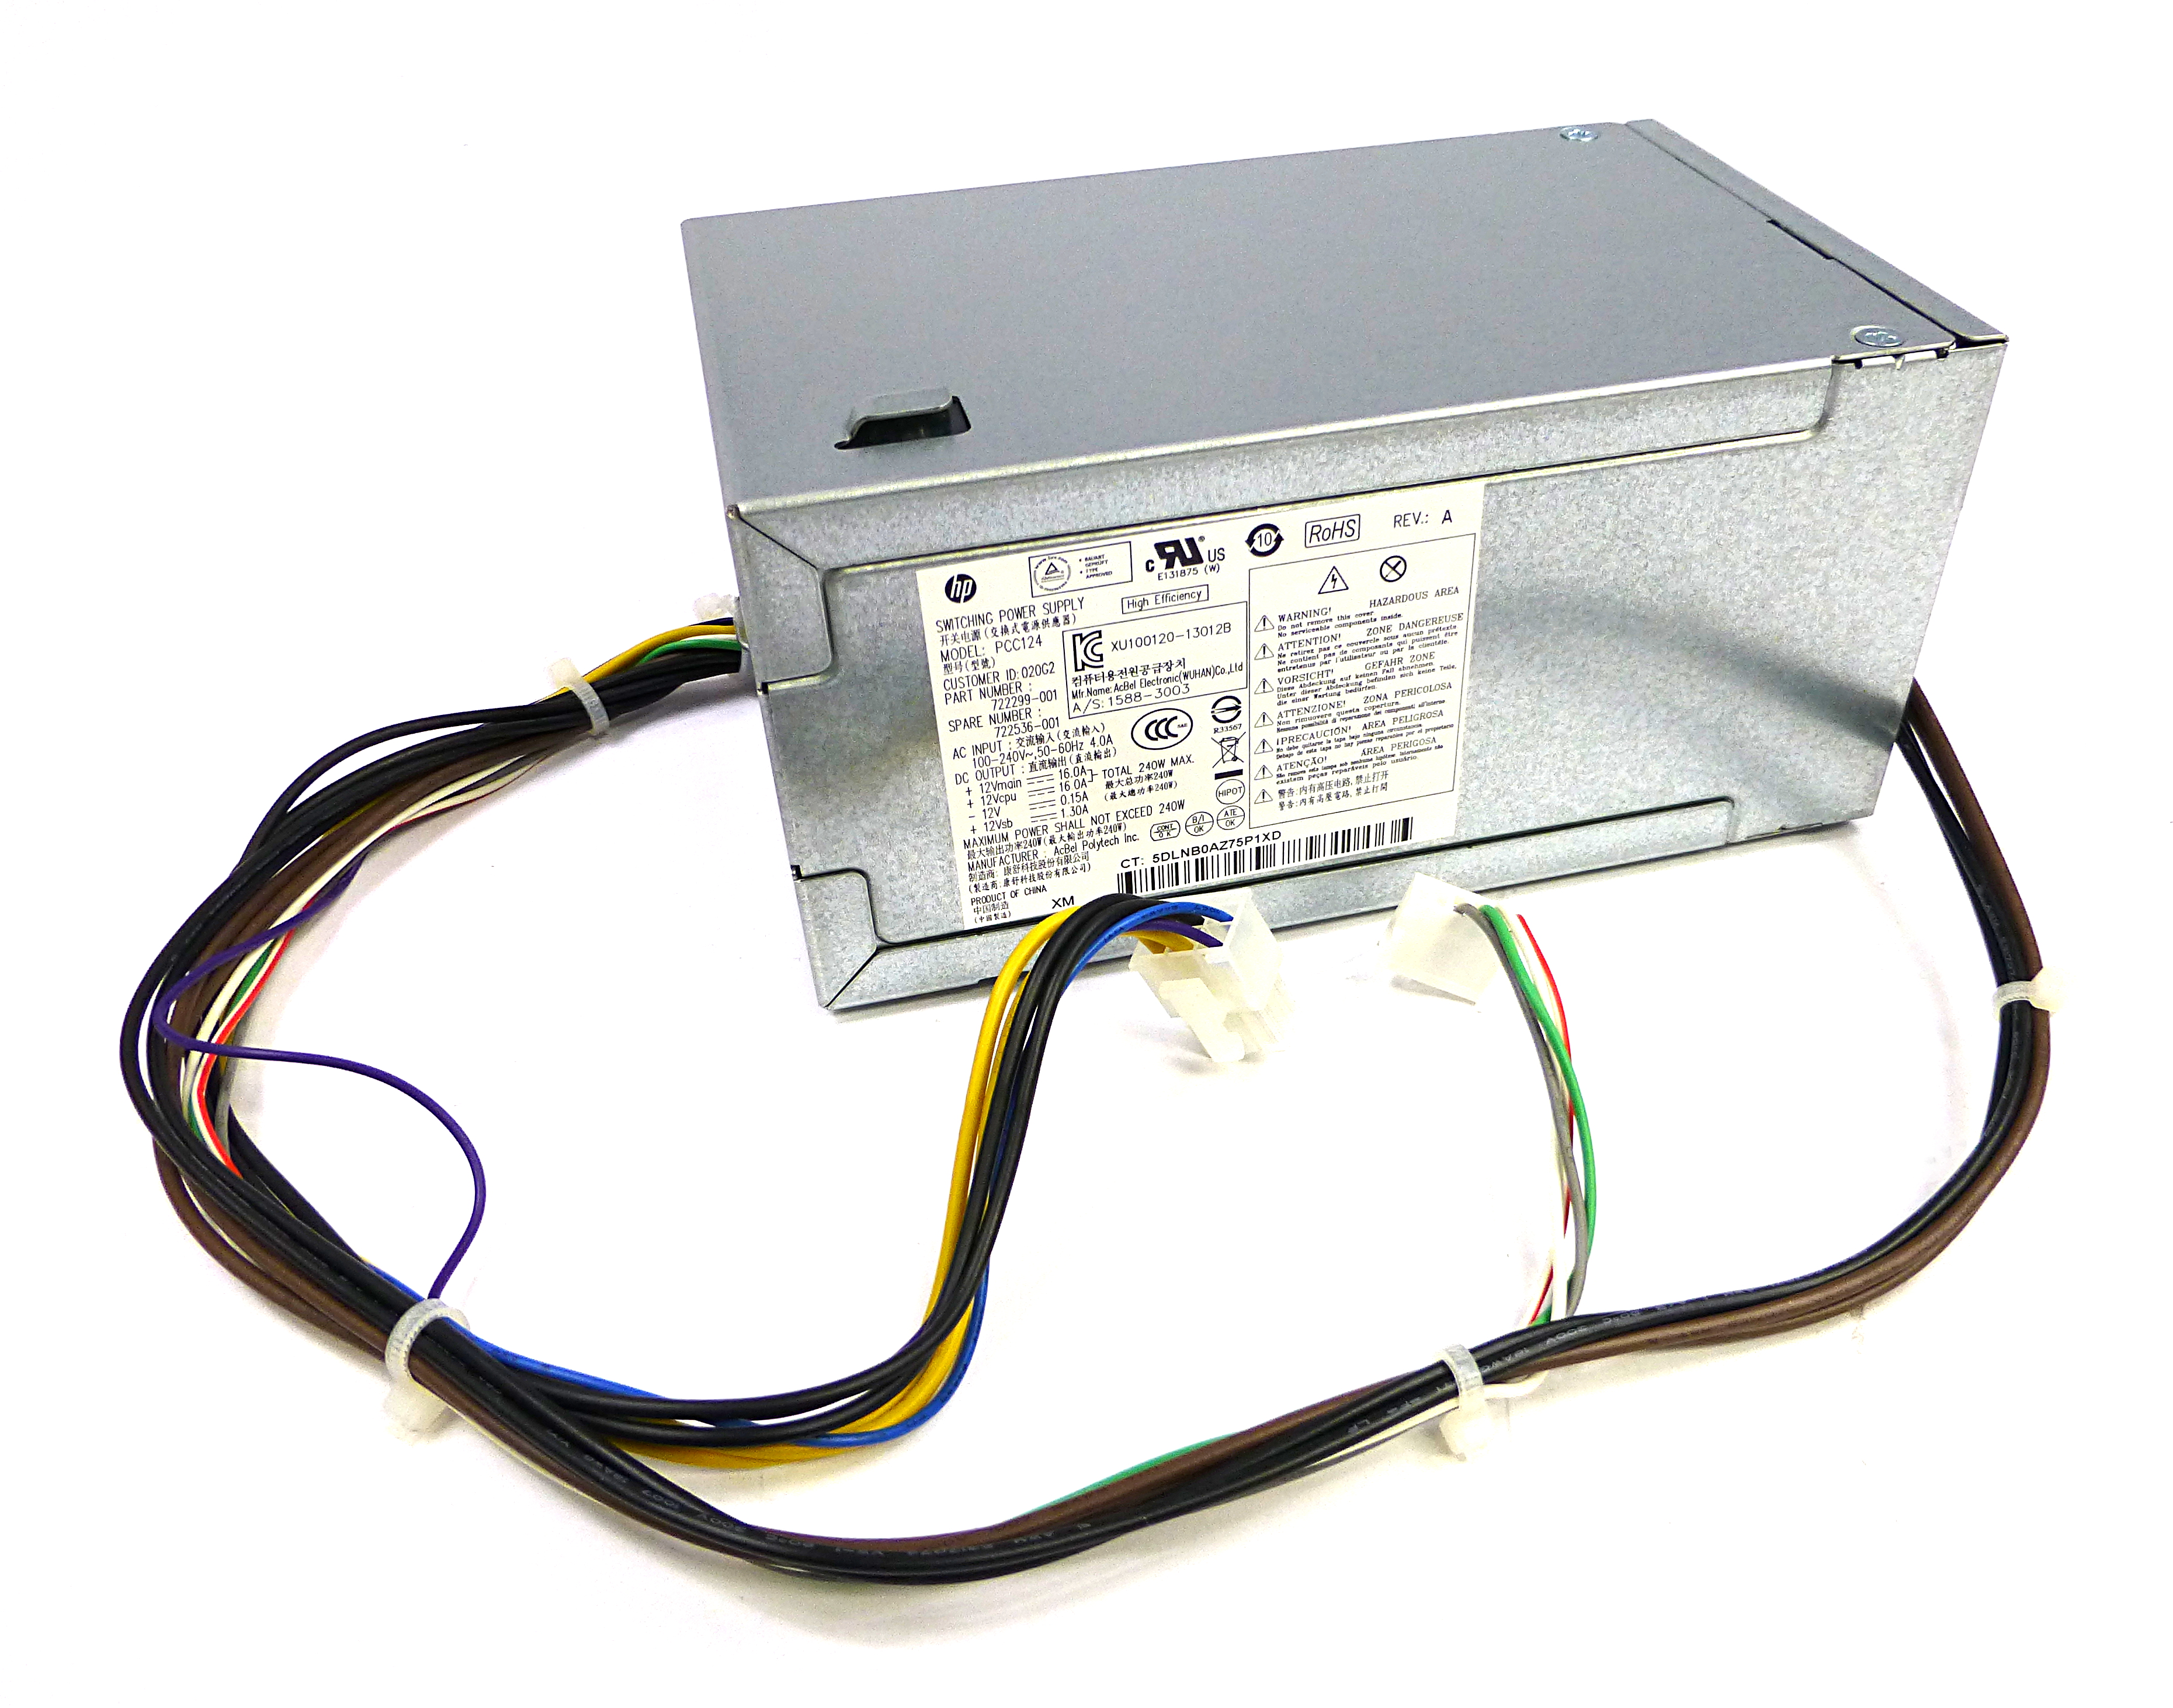 HP 722536-001 AcBel PCC124 240W 6-Pin Power Supply For ProDesk 400 G1 SFF PC